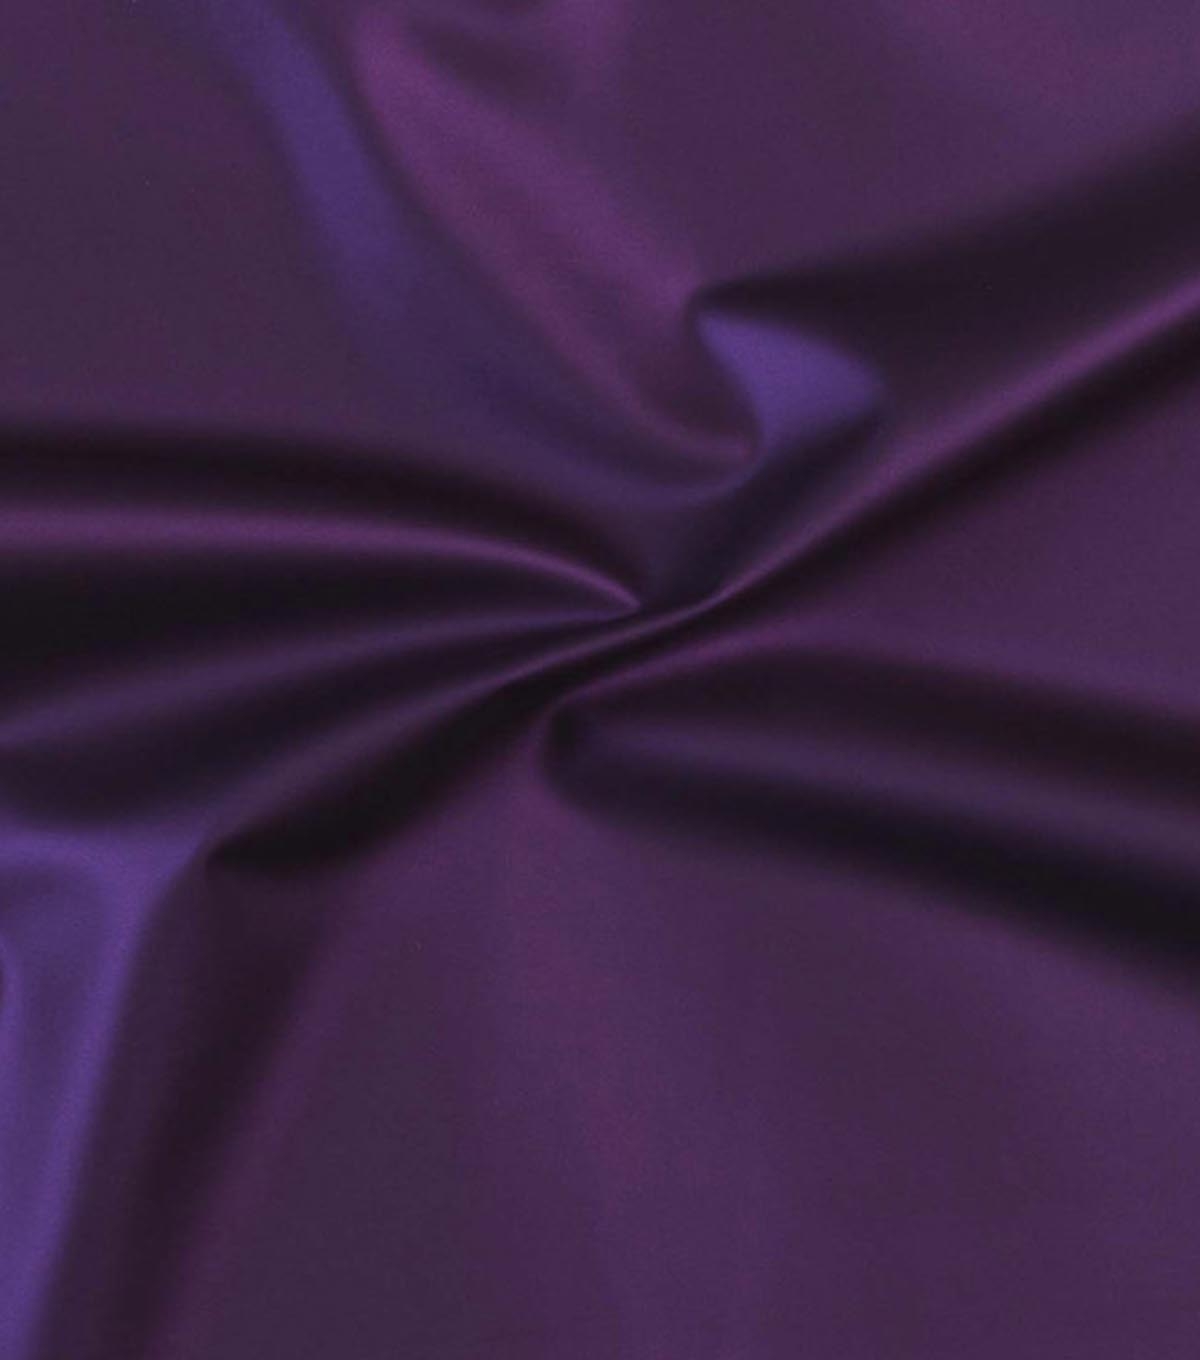 Cosplay by Yaya Han 4-Way Ultrapreme Fabric -Purple